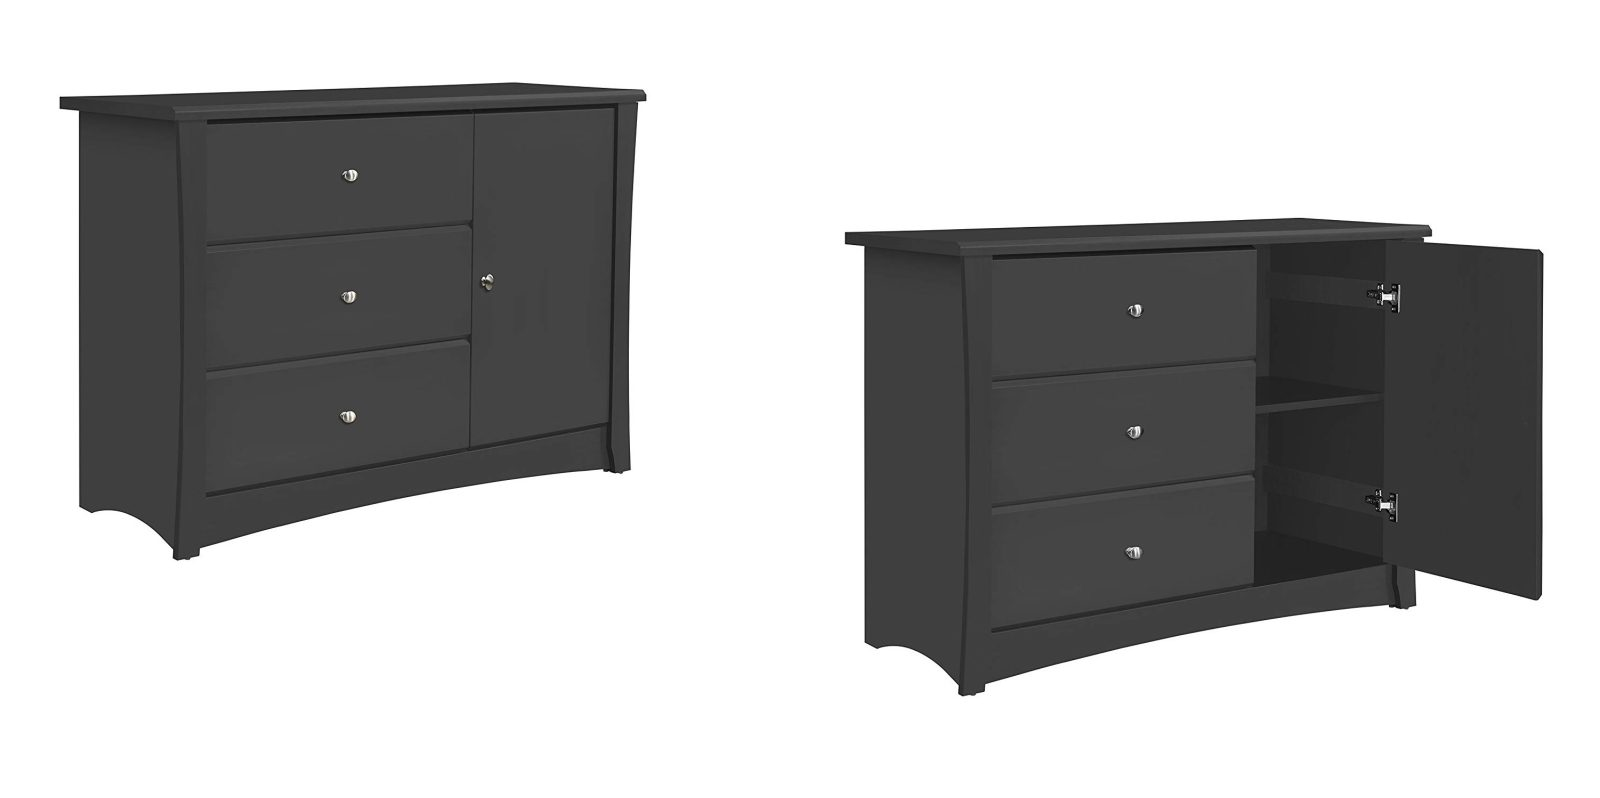 Fit clothes, toys, diapers in this sleek Storkcraft 3-Drawer Dresser at $85